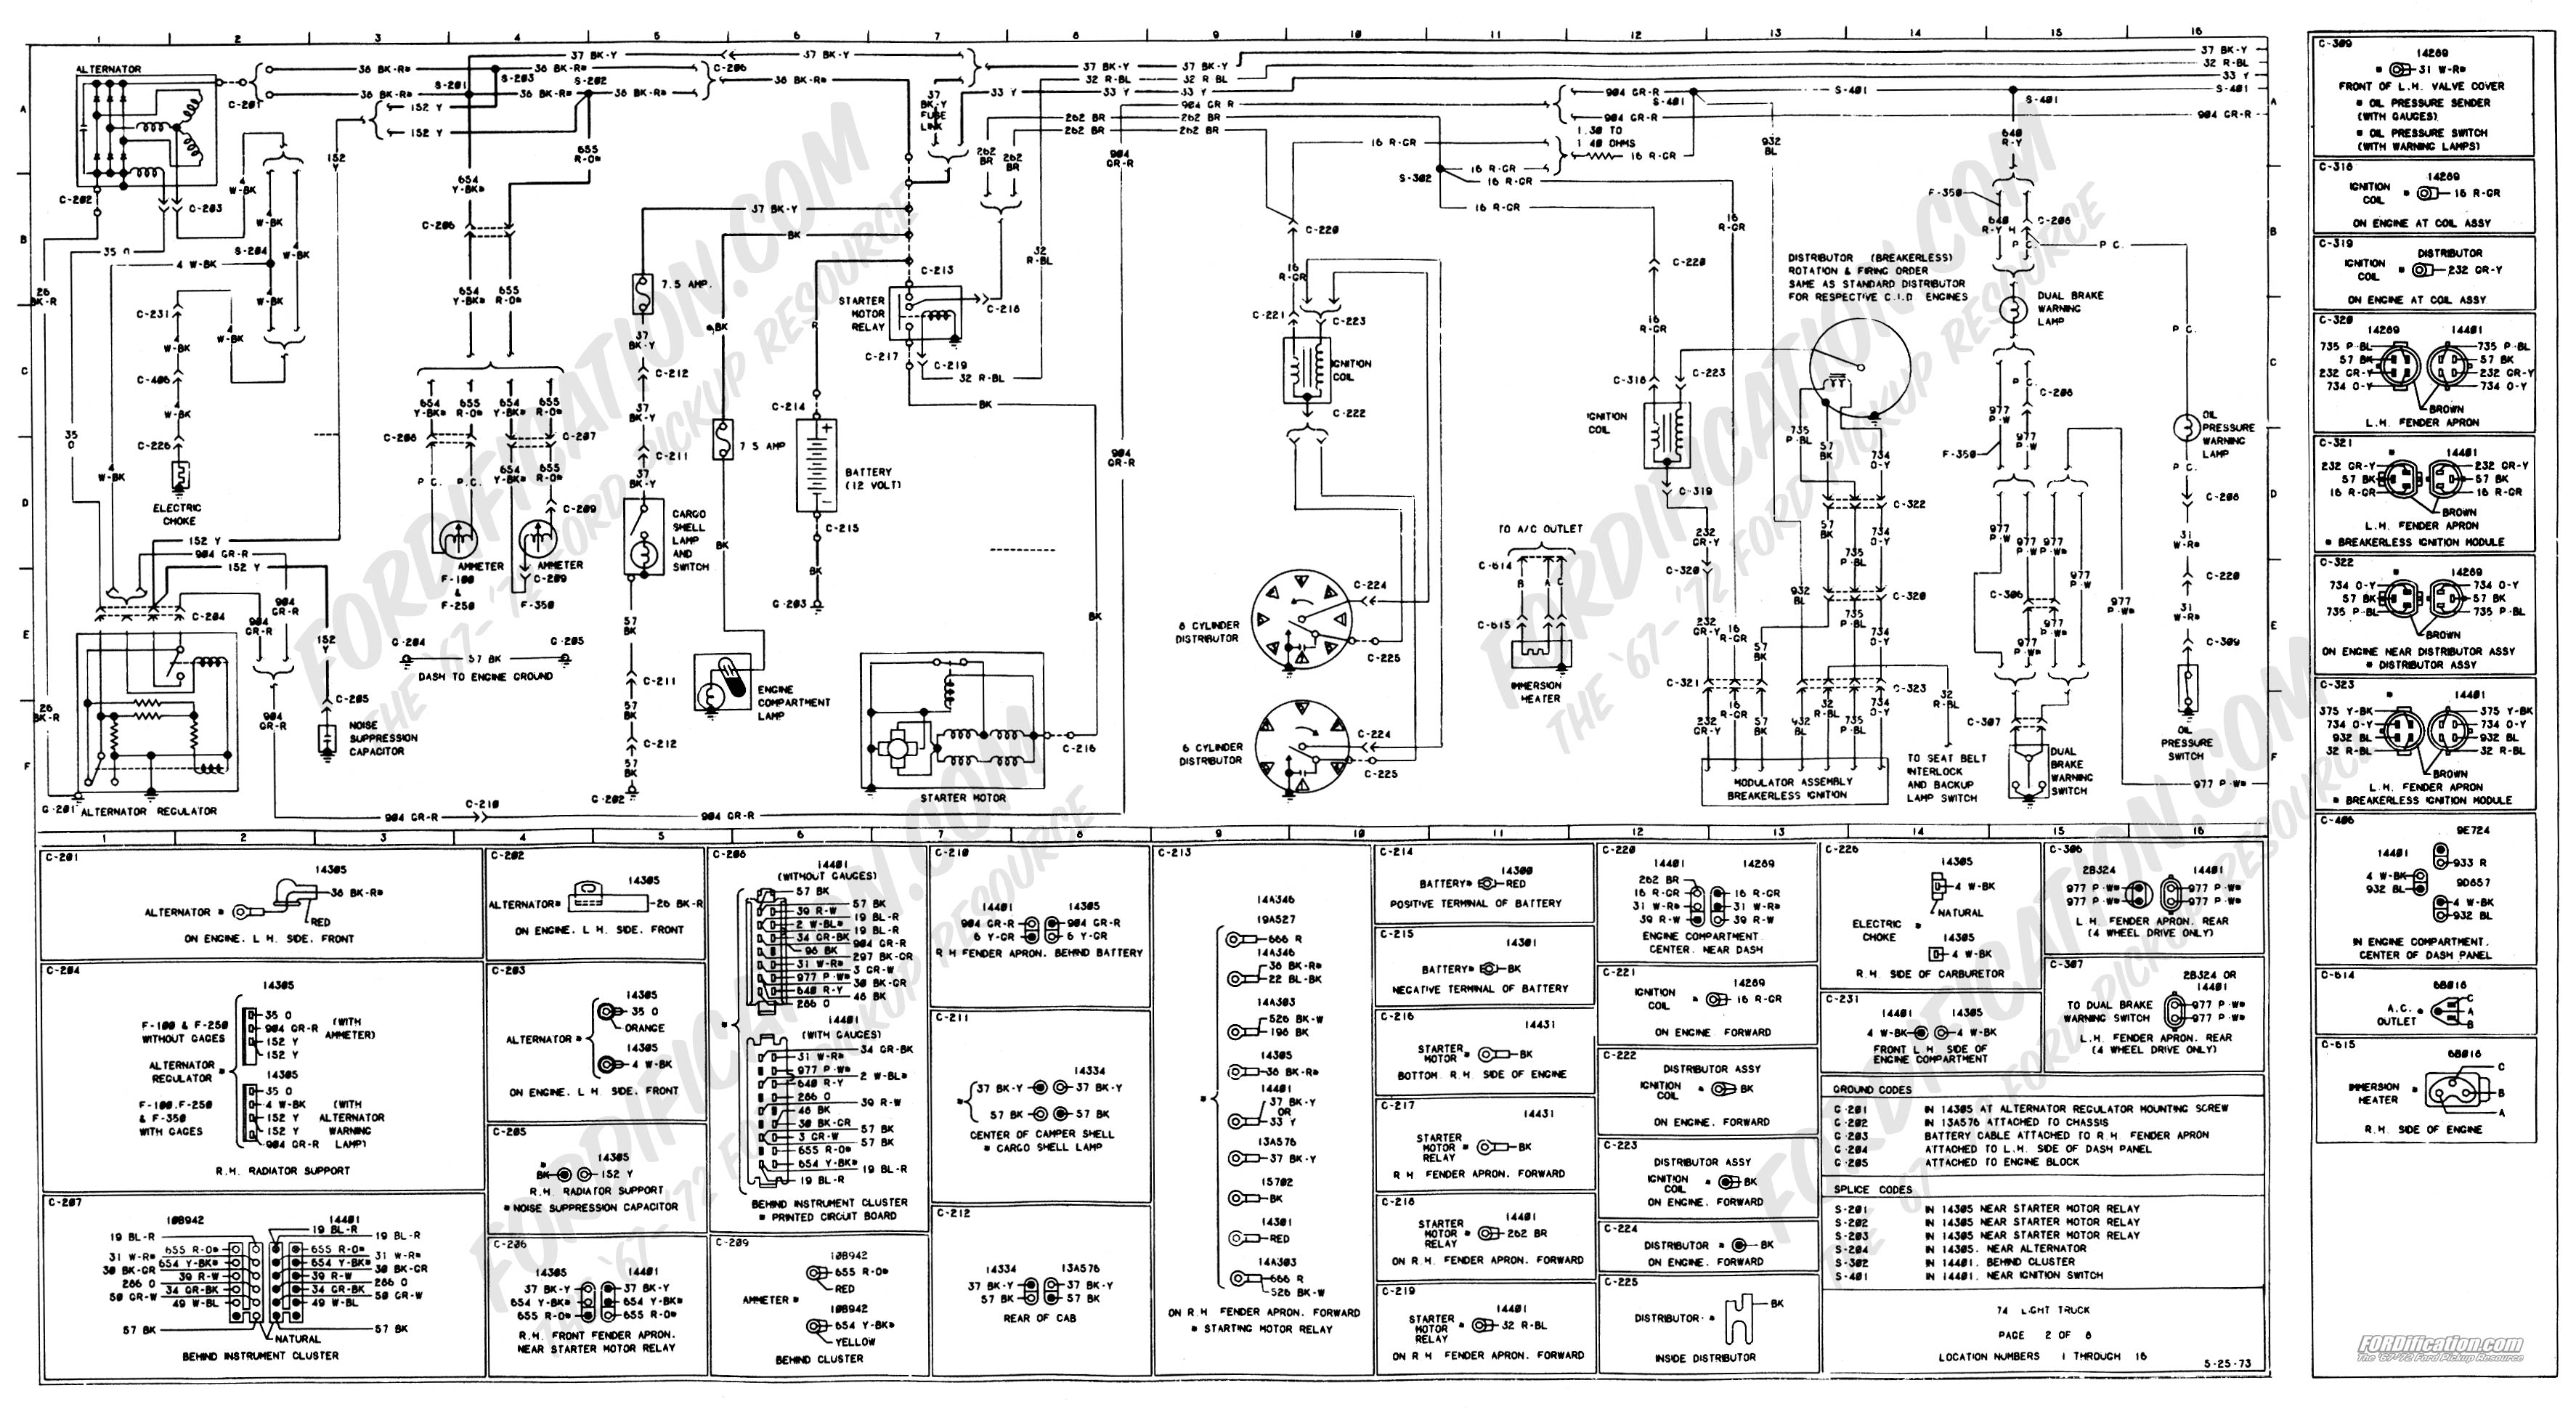 1973 1979 ford truck wiring diagrams & schematics fordification net 2003 ford  truck fuse diagram ford